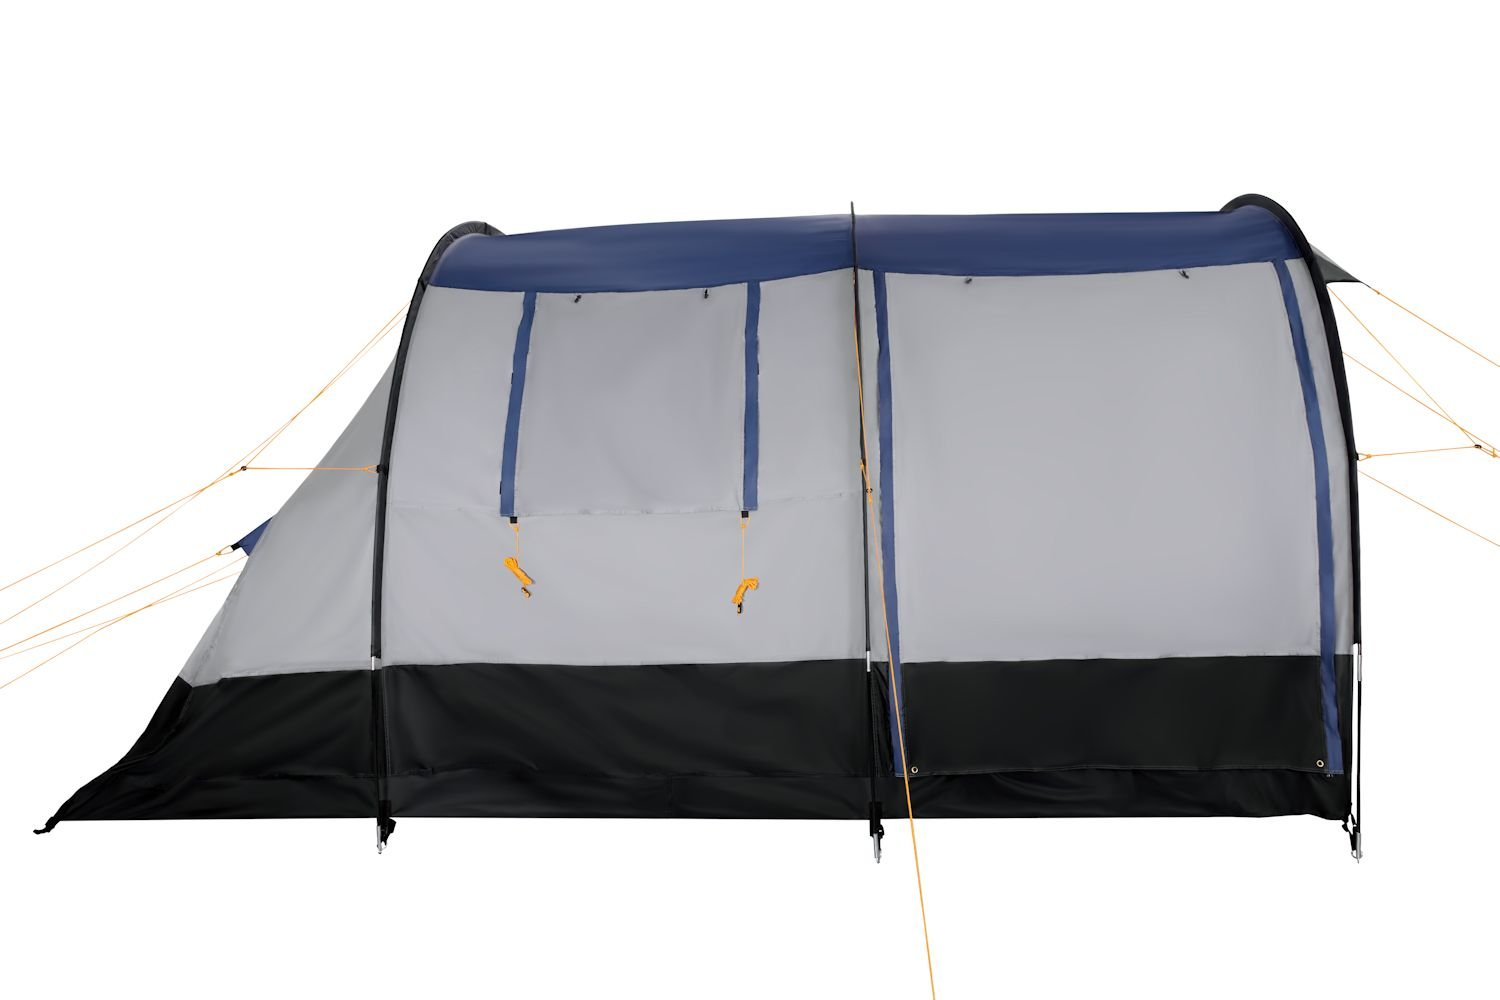 CampFeuer - Tunnel Tent, spacious Camping Tent, 510x360x210 cm, blue/grey - Version 2 4